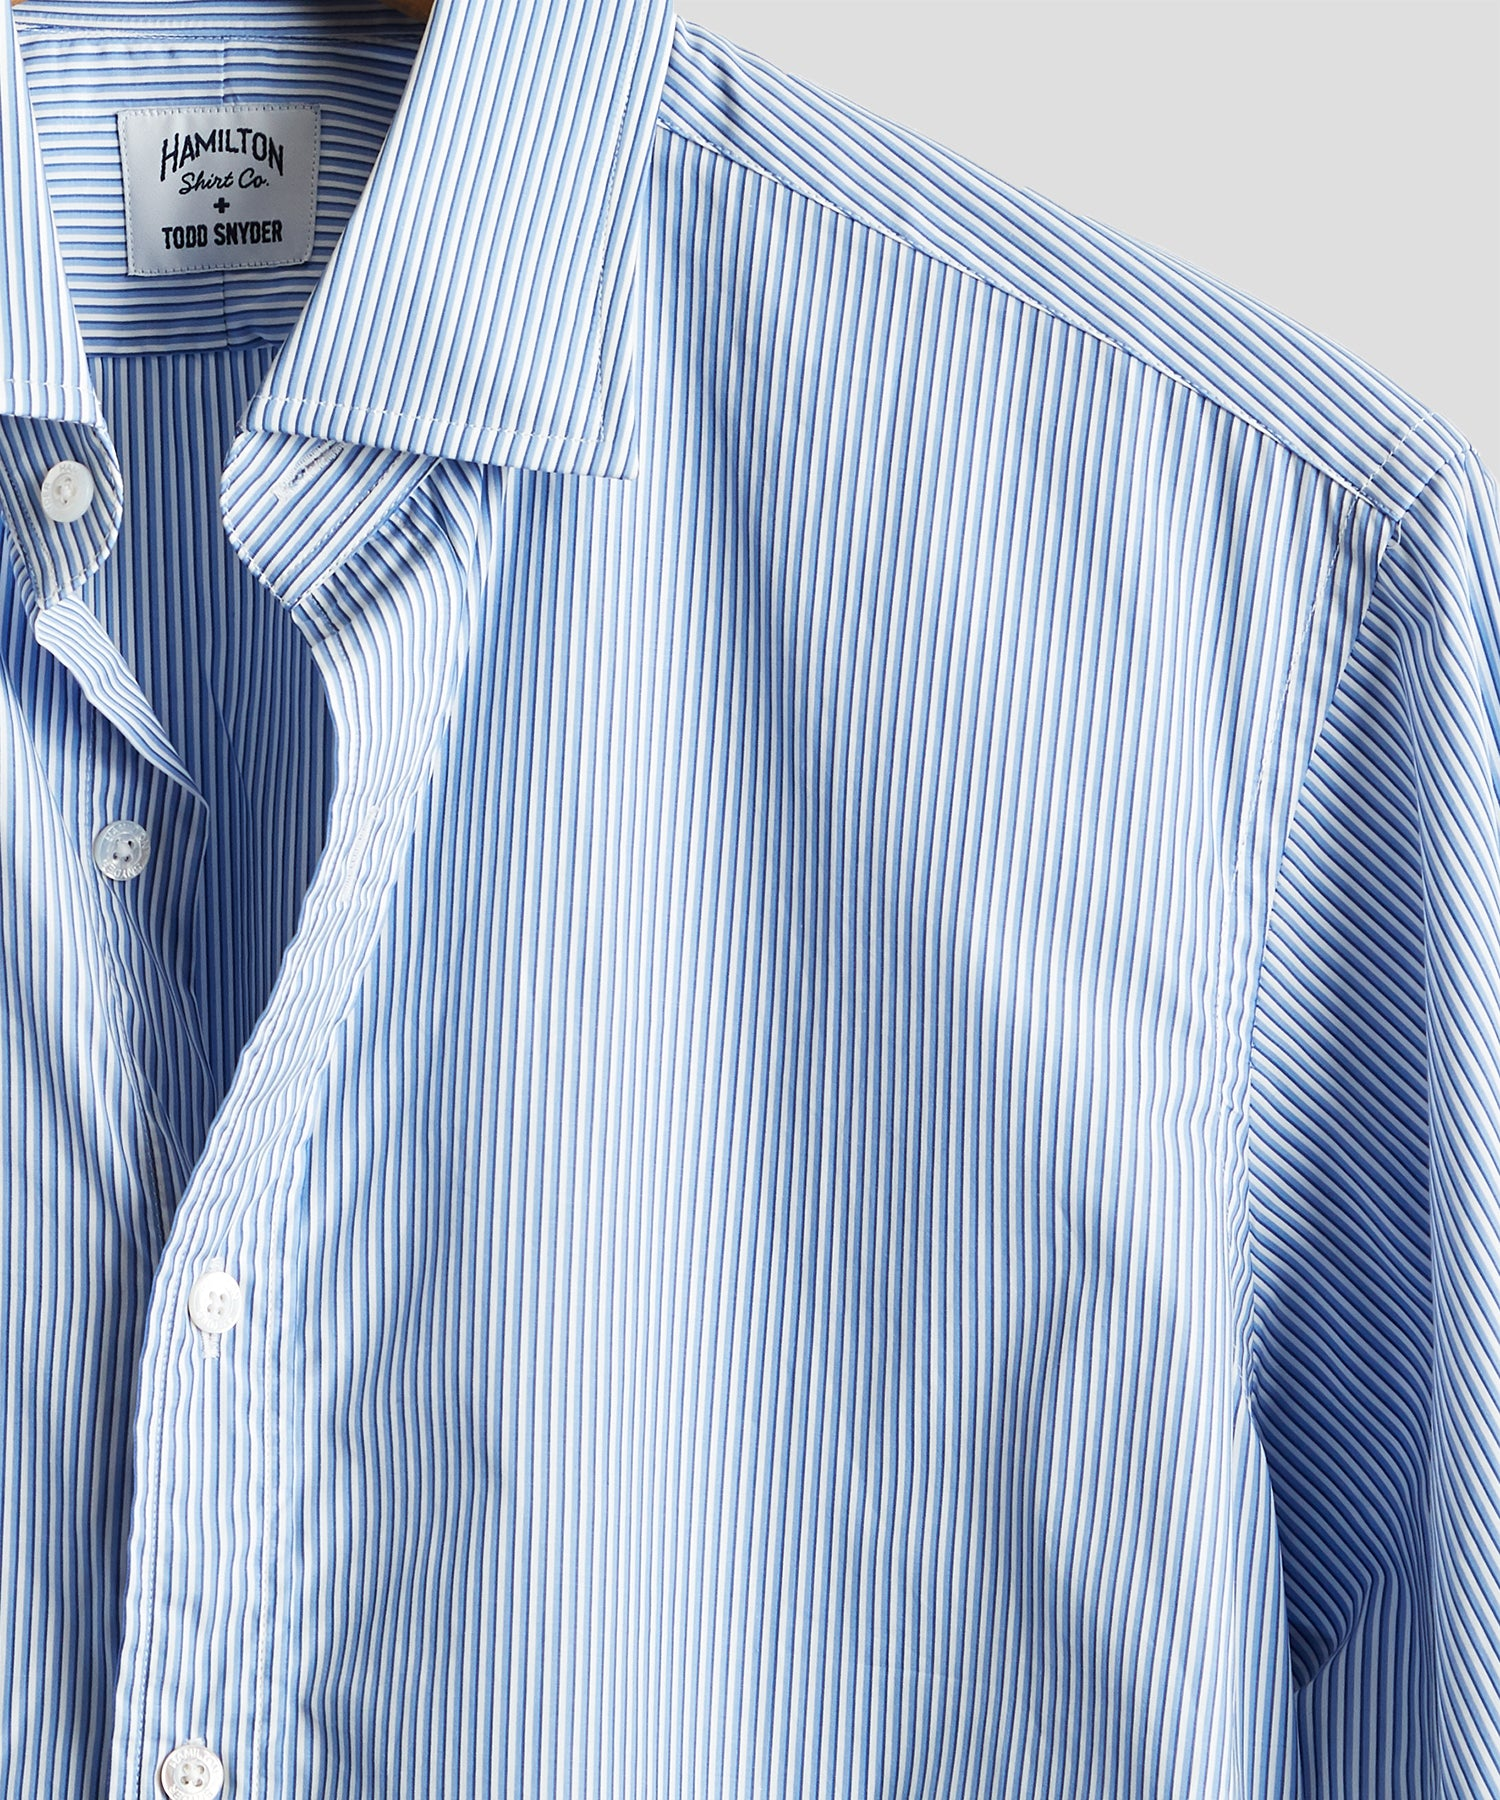 Made in USA Hamilton + Todd Snyder Blue Stripe Dress Shirt